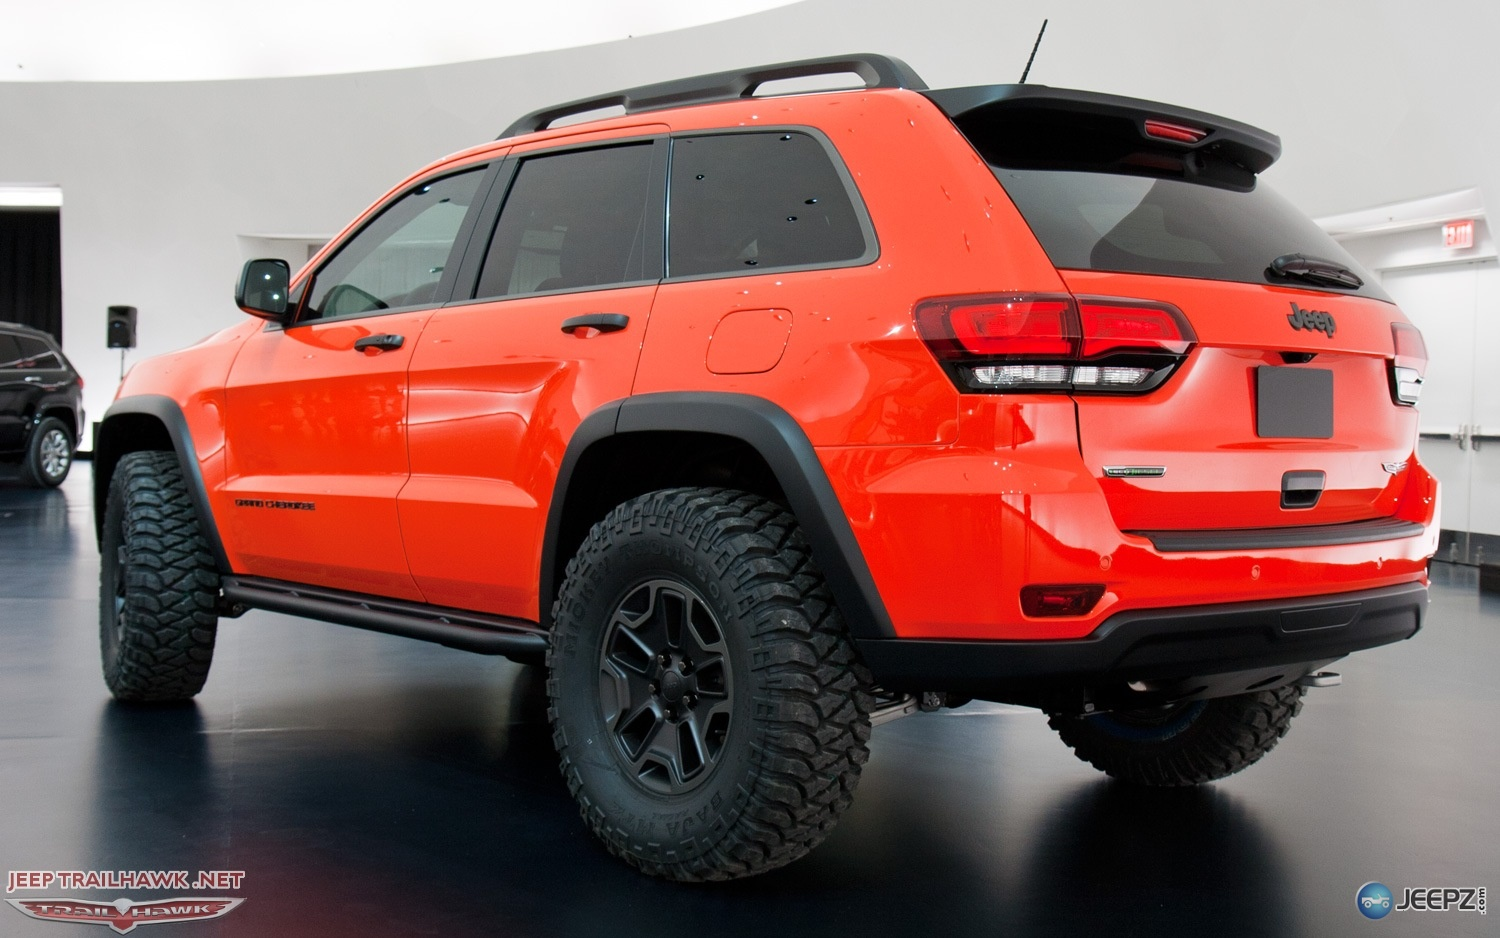 D Moab Concepts Revealed Jeep Grand Cherokee Trailhawk Ii Concept Rear Three Quarters View